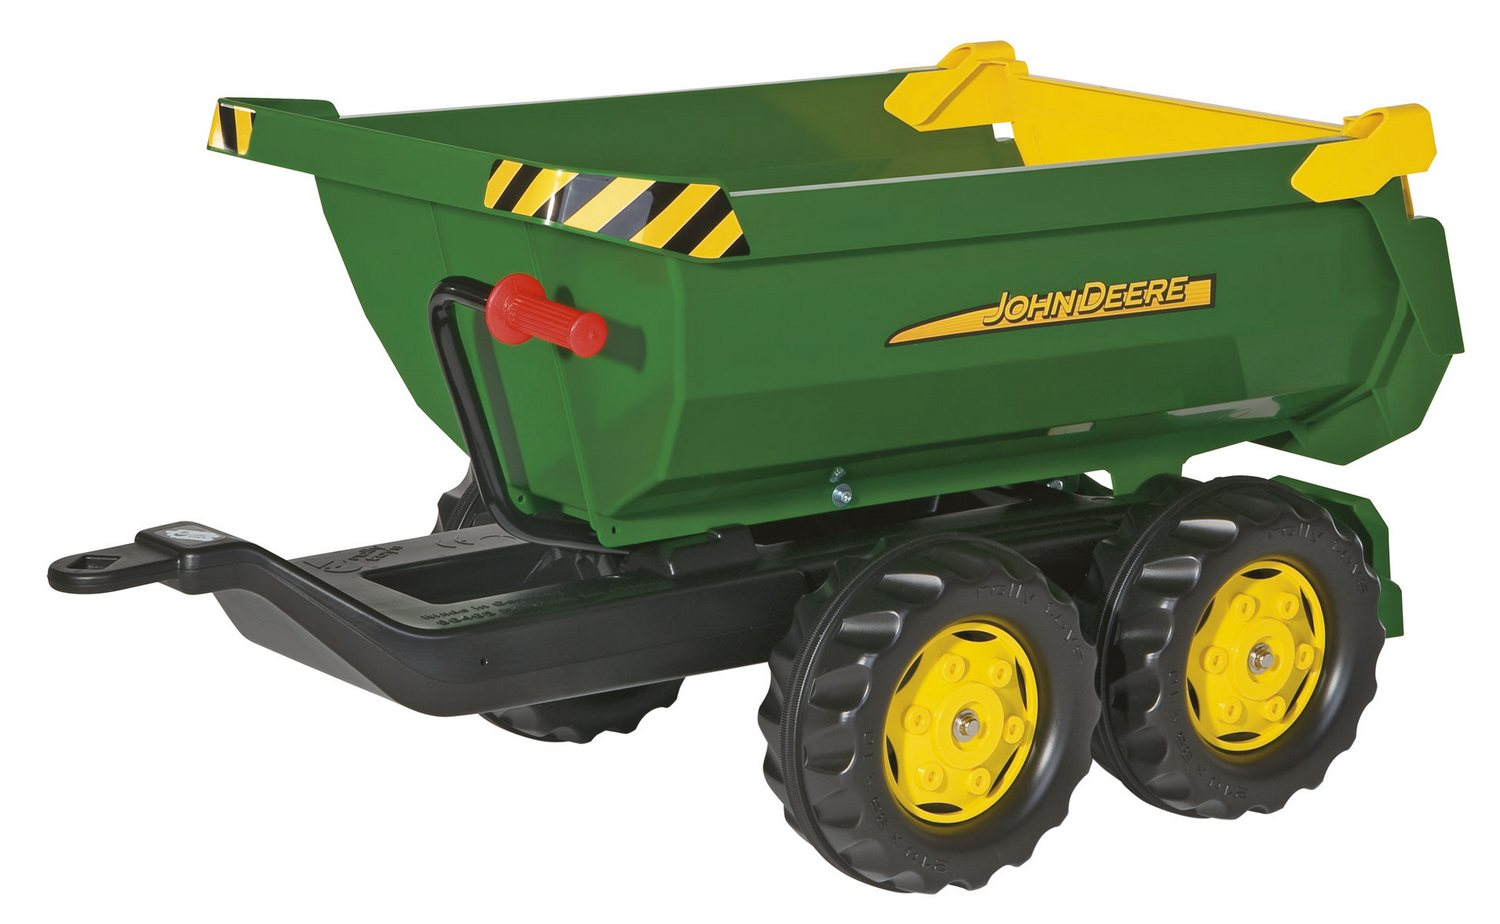 Remorca Rolly Toys, rollyHalfpipe John Deere